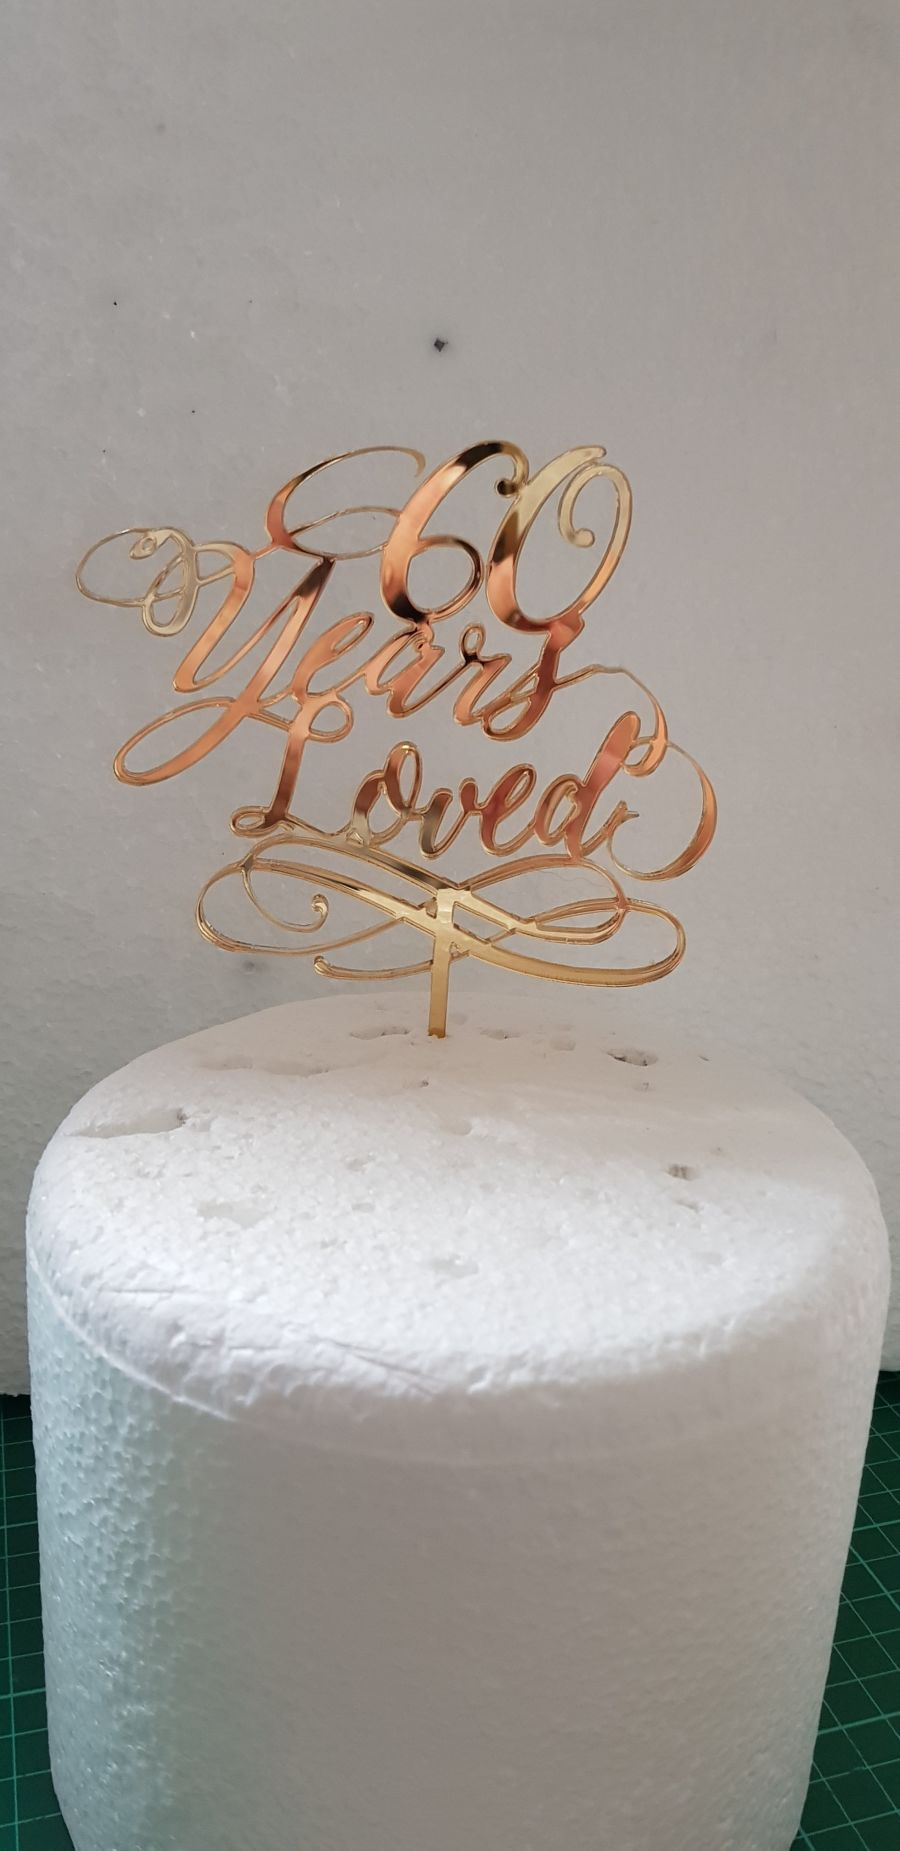 60 Years loved acrylic cake topper